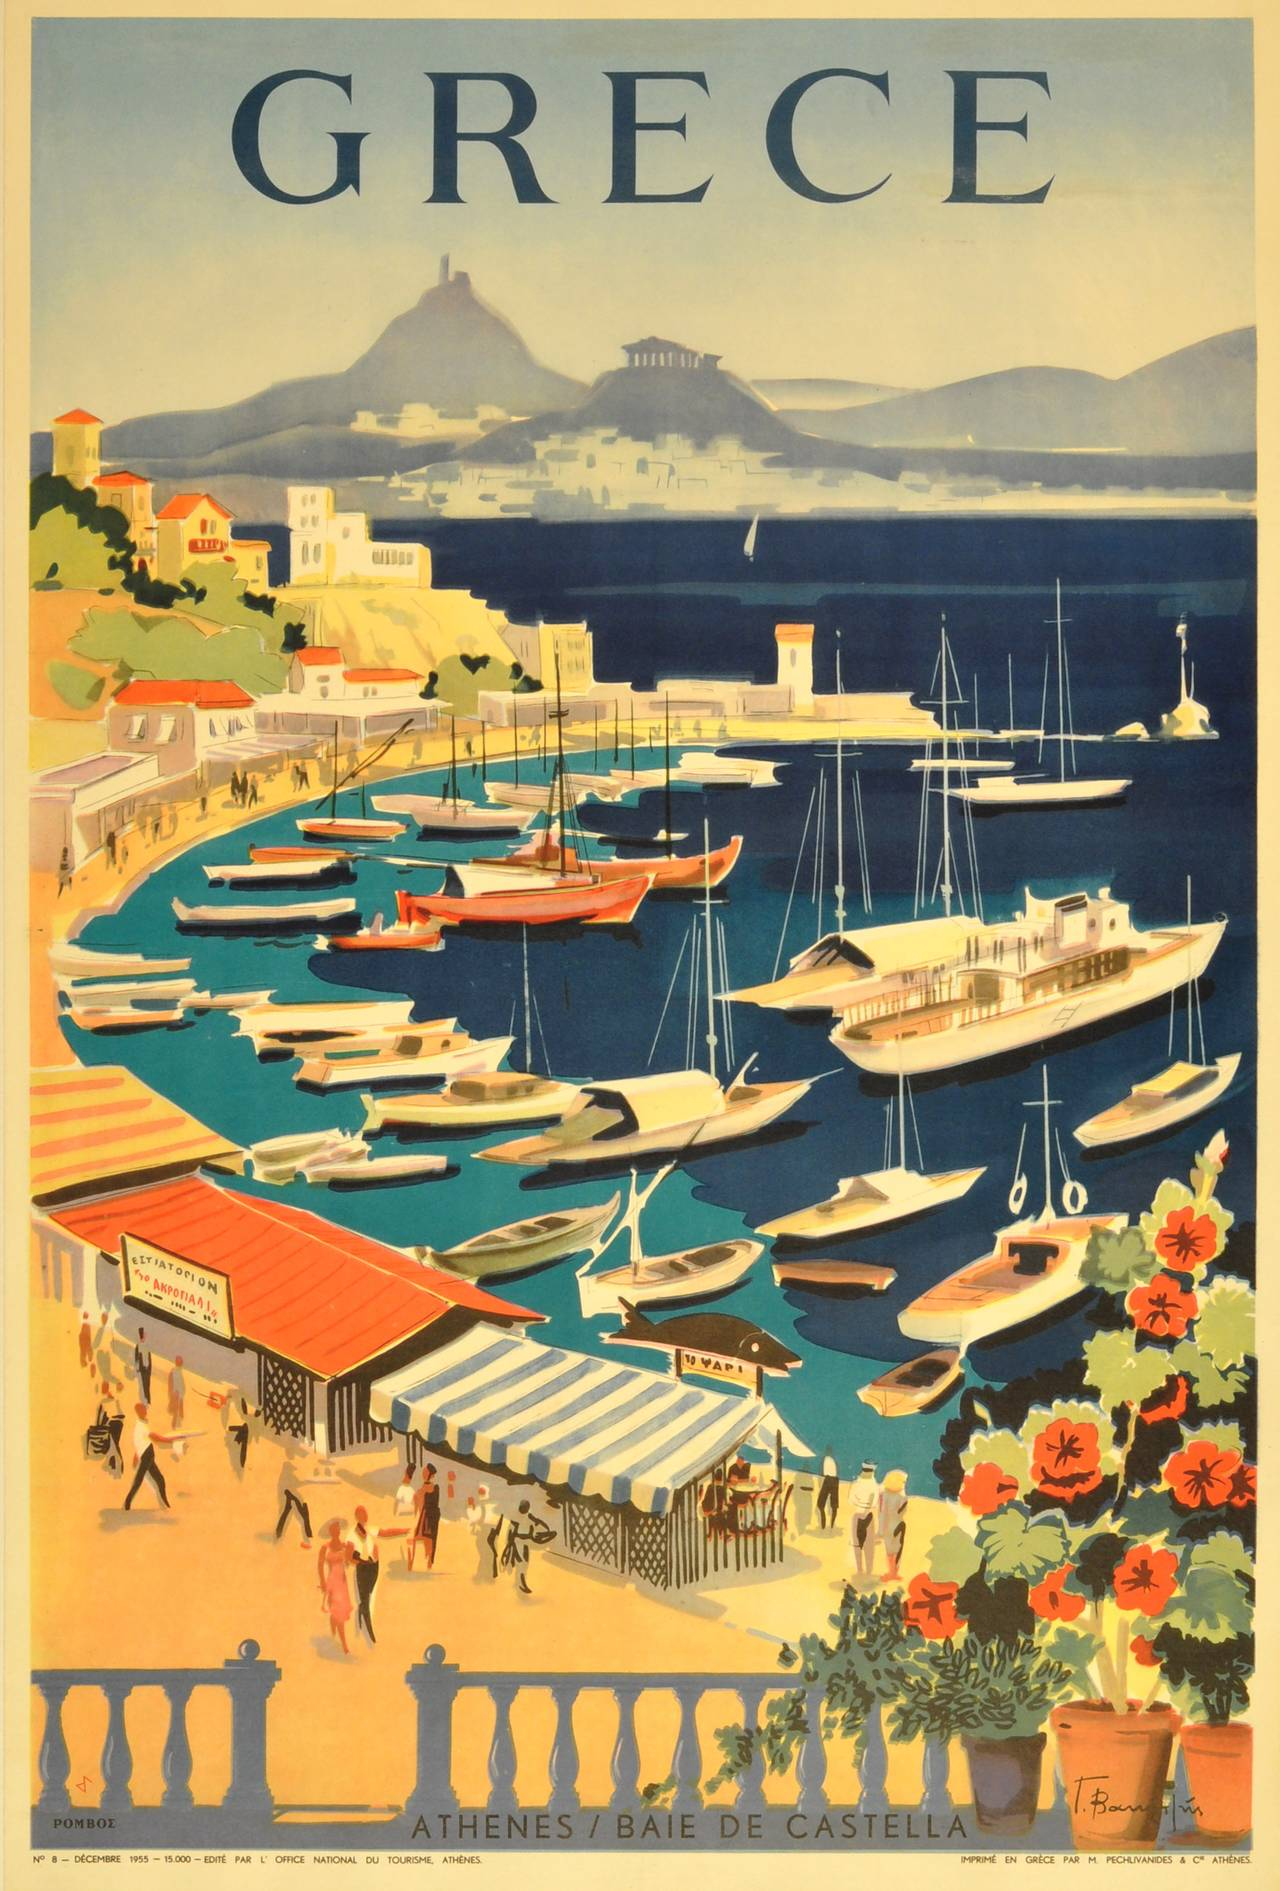 Greece, vintage travel poster